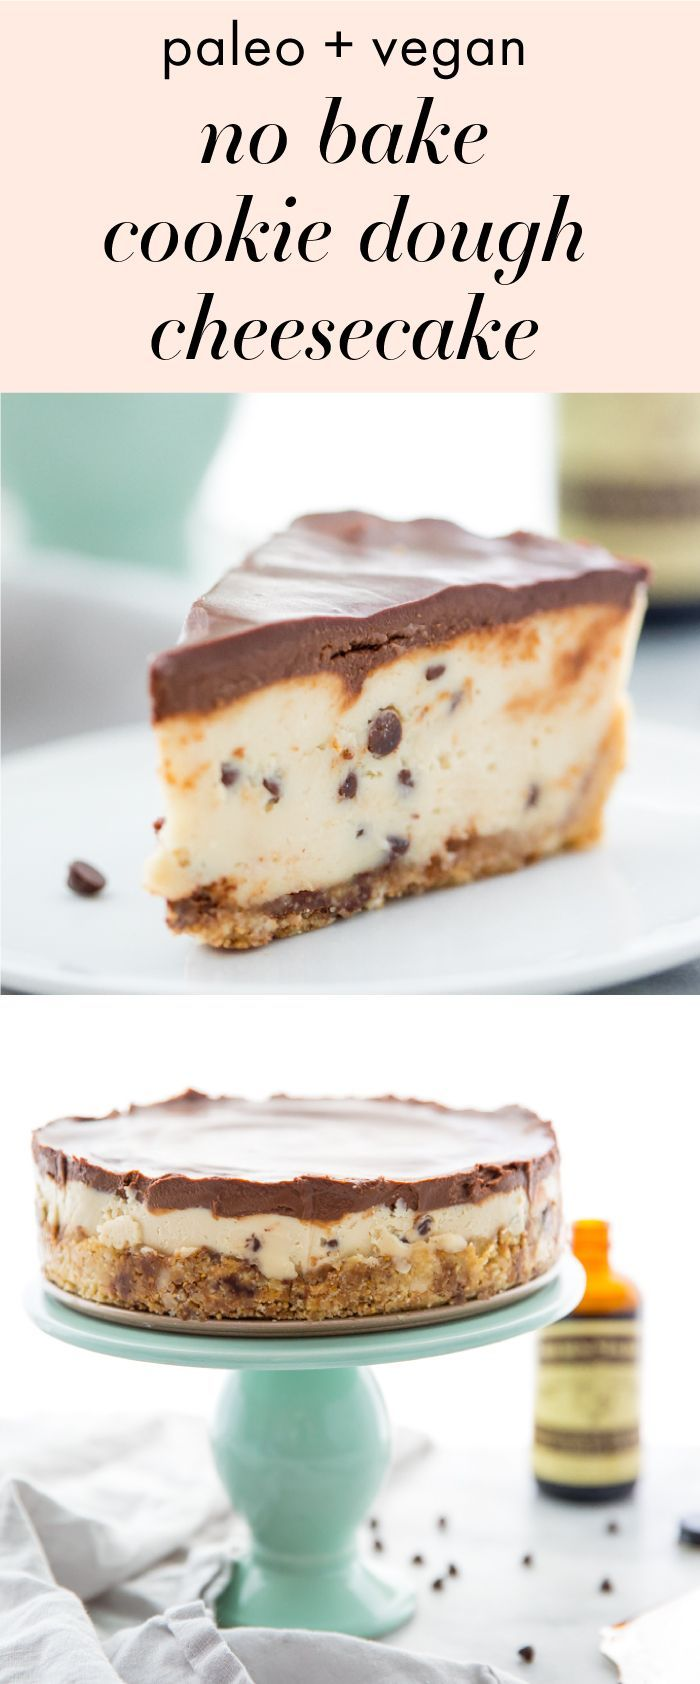 Vegan No Bake Cookie Dough Cheesecake (Paleo, Raw)